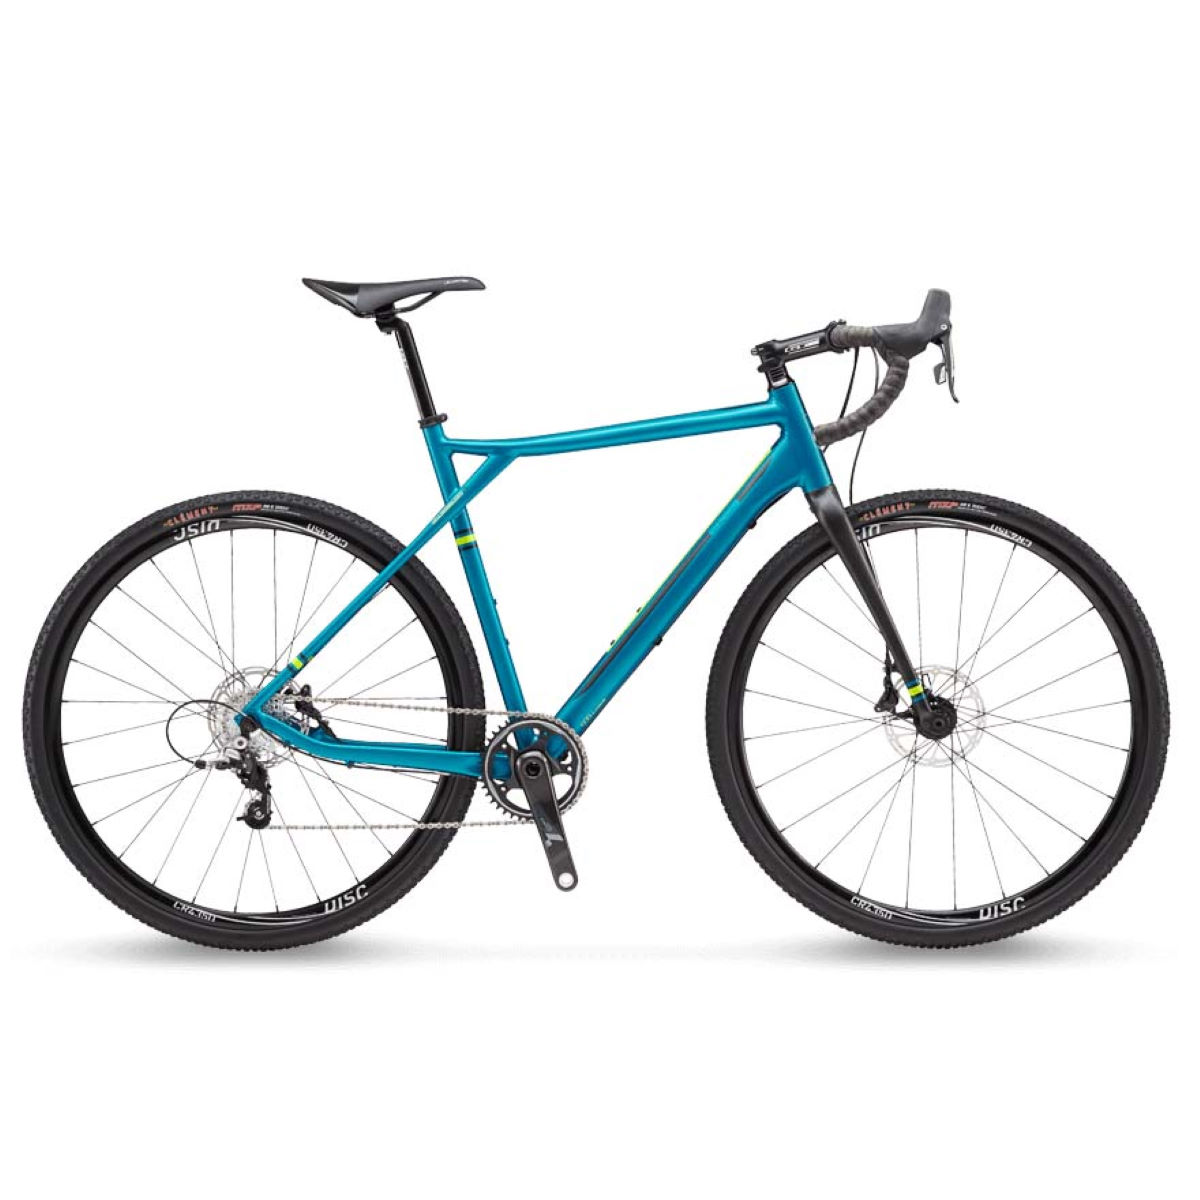 Vélo de route Femme GT Grade AL X (2016) - Medium Ex Demo Bike Bleu Vélos de route